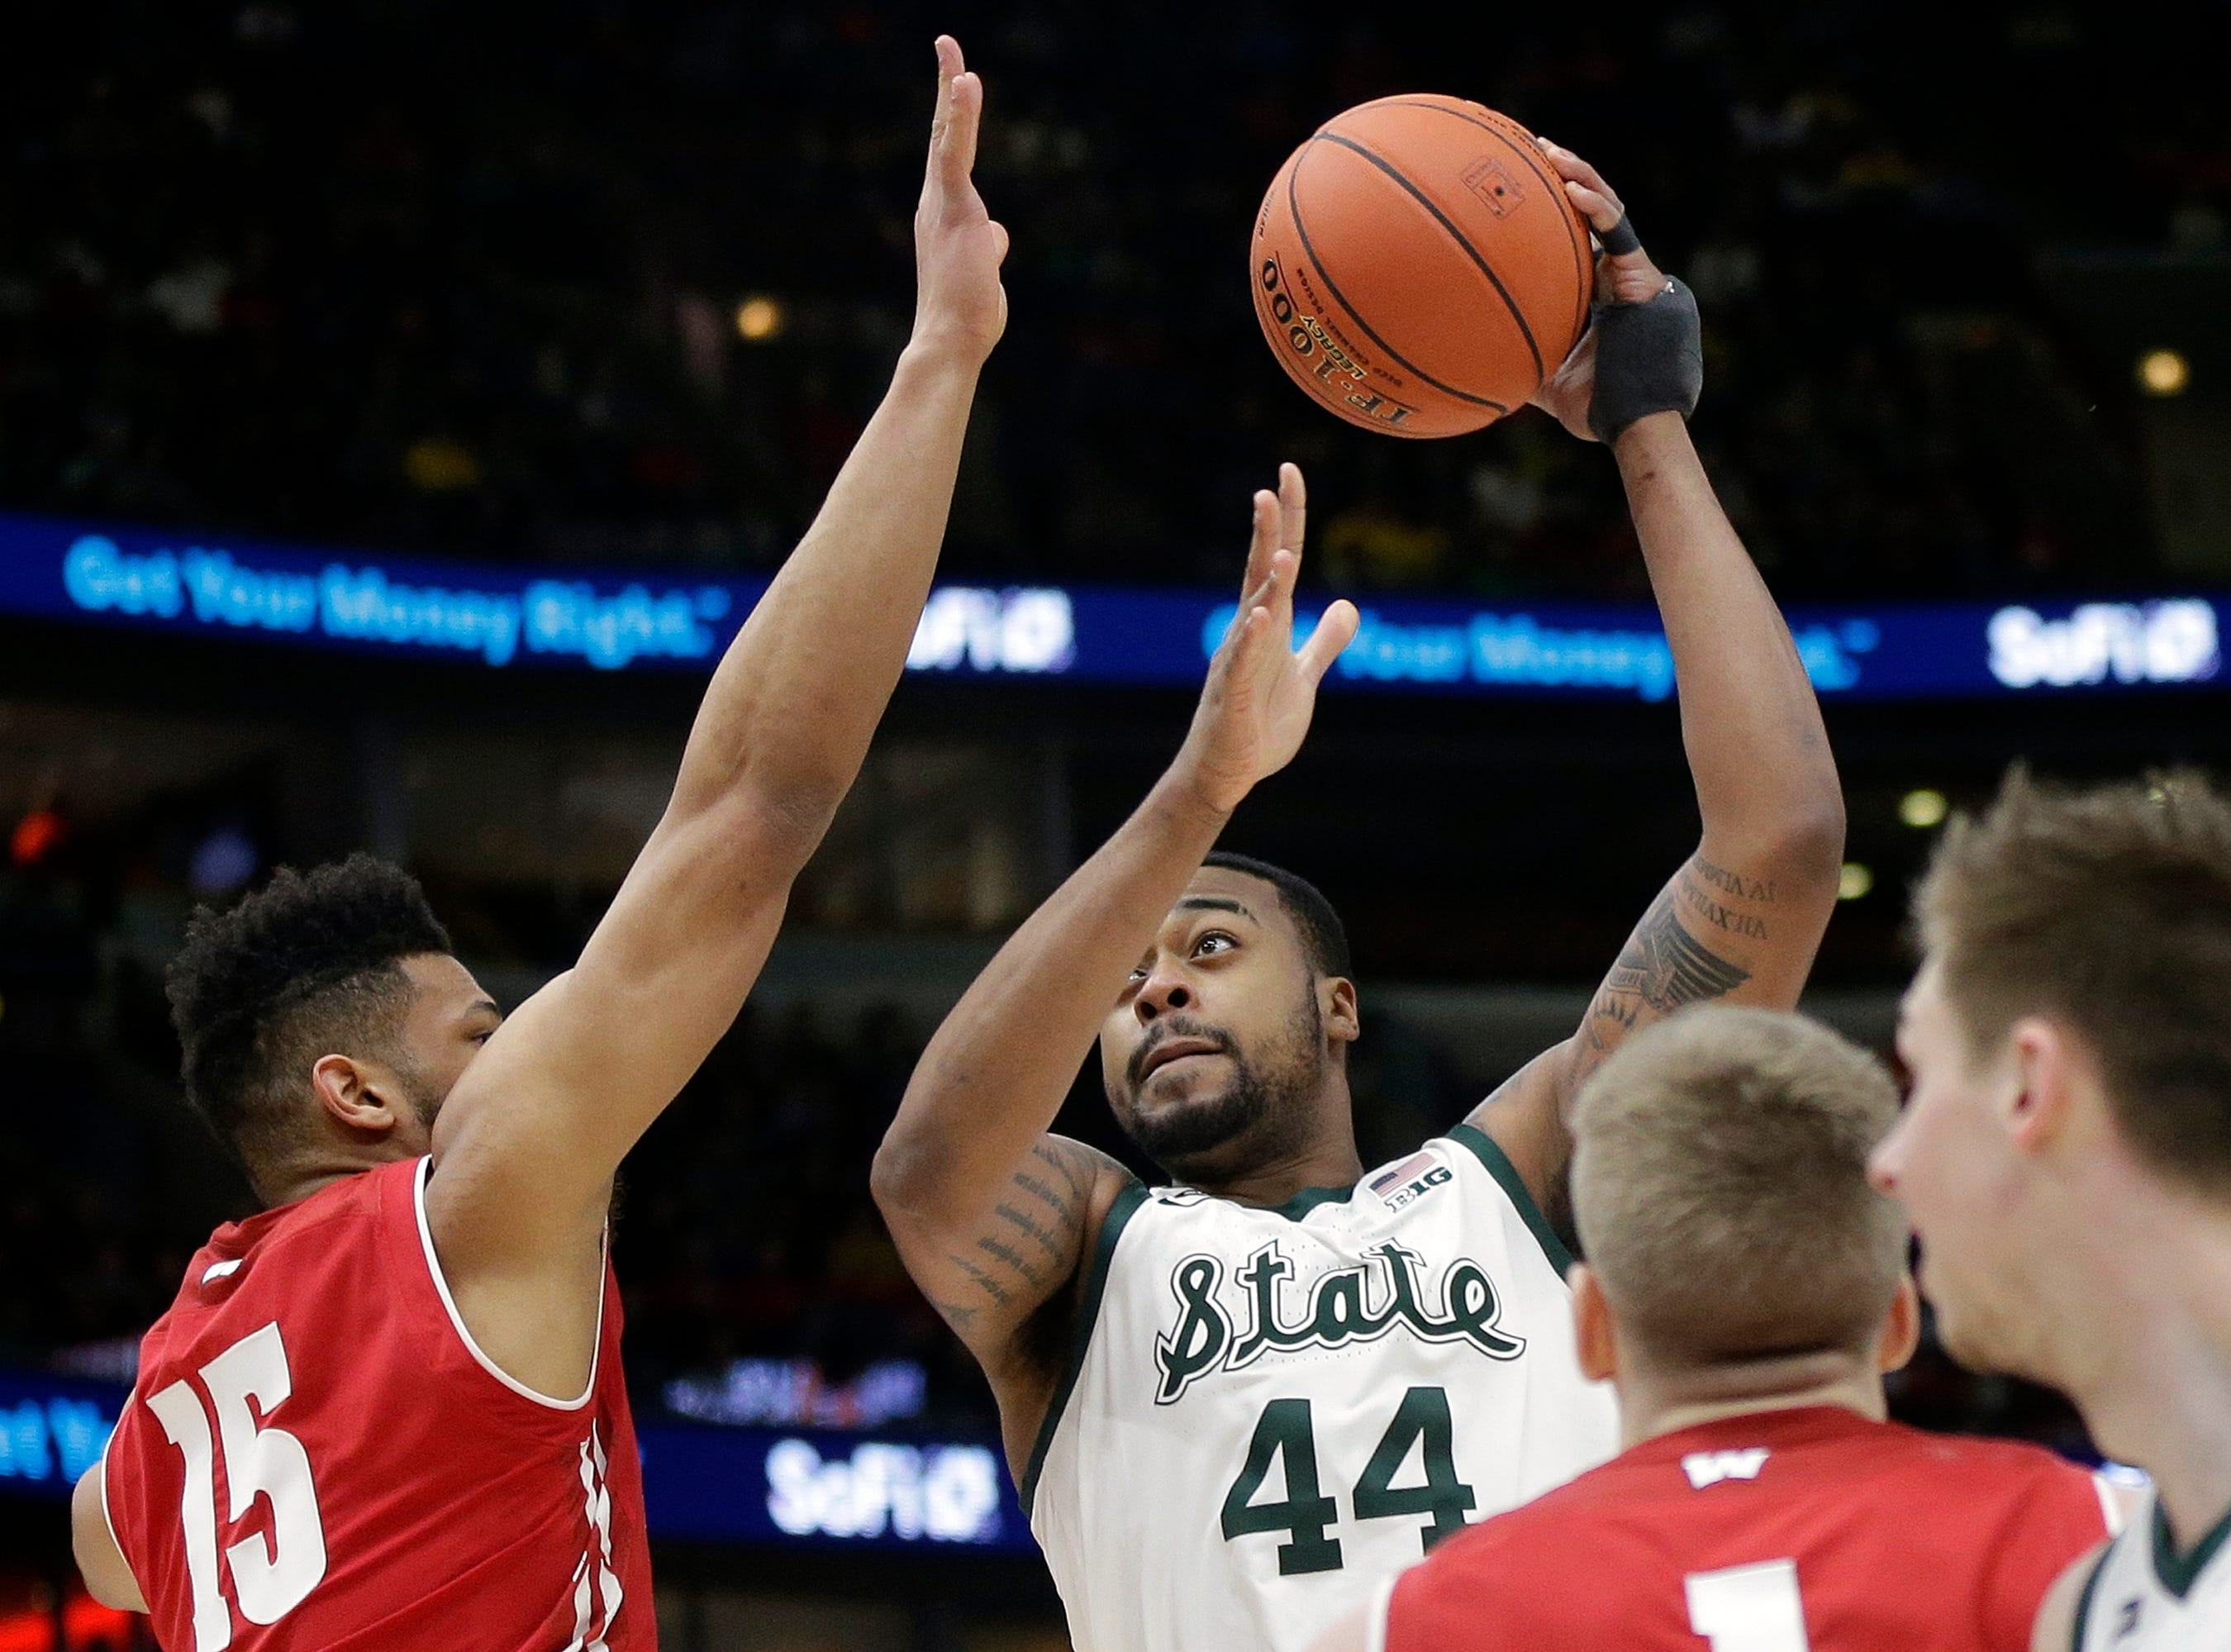 Michigan State's Nick Ward (44) takes a shot over Wisconsin's Charles Thomas IV (15) during the first half of an NCAA college basketball game in the semifinals of the Big Ten Conference tournament, Saturday, March 16, 2019, in Chicago.